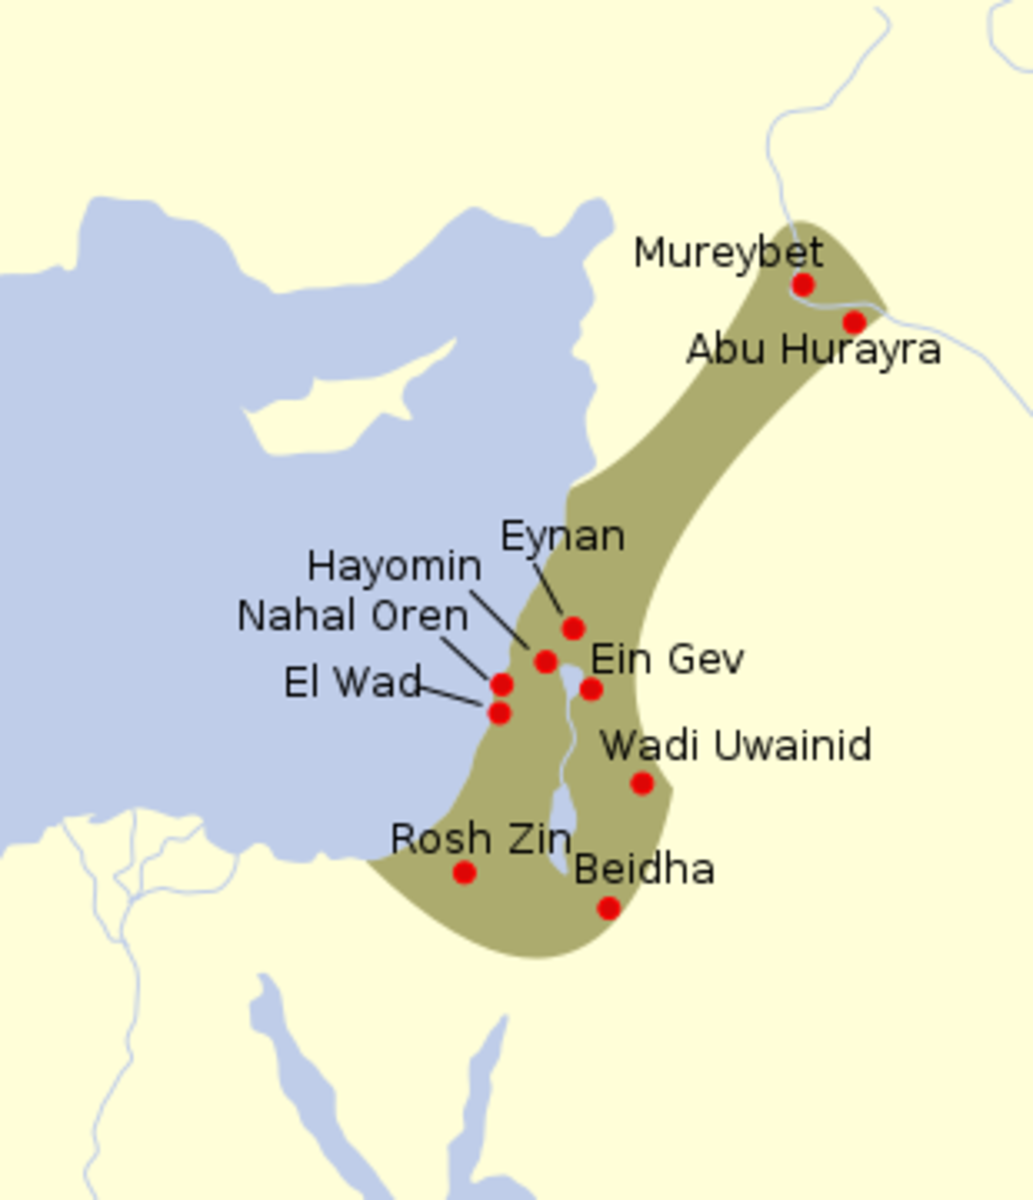 The highlighted part of this map of the Middle East shows sites where Natufian artefacts have been found, dating to between 13,000-9000 years ago.